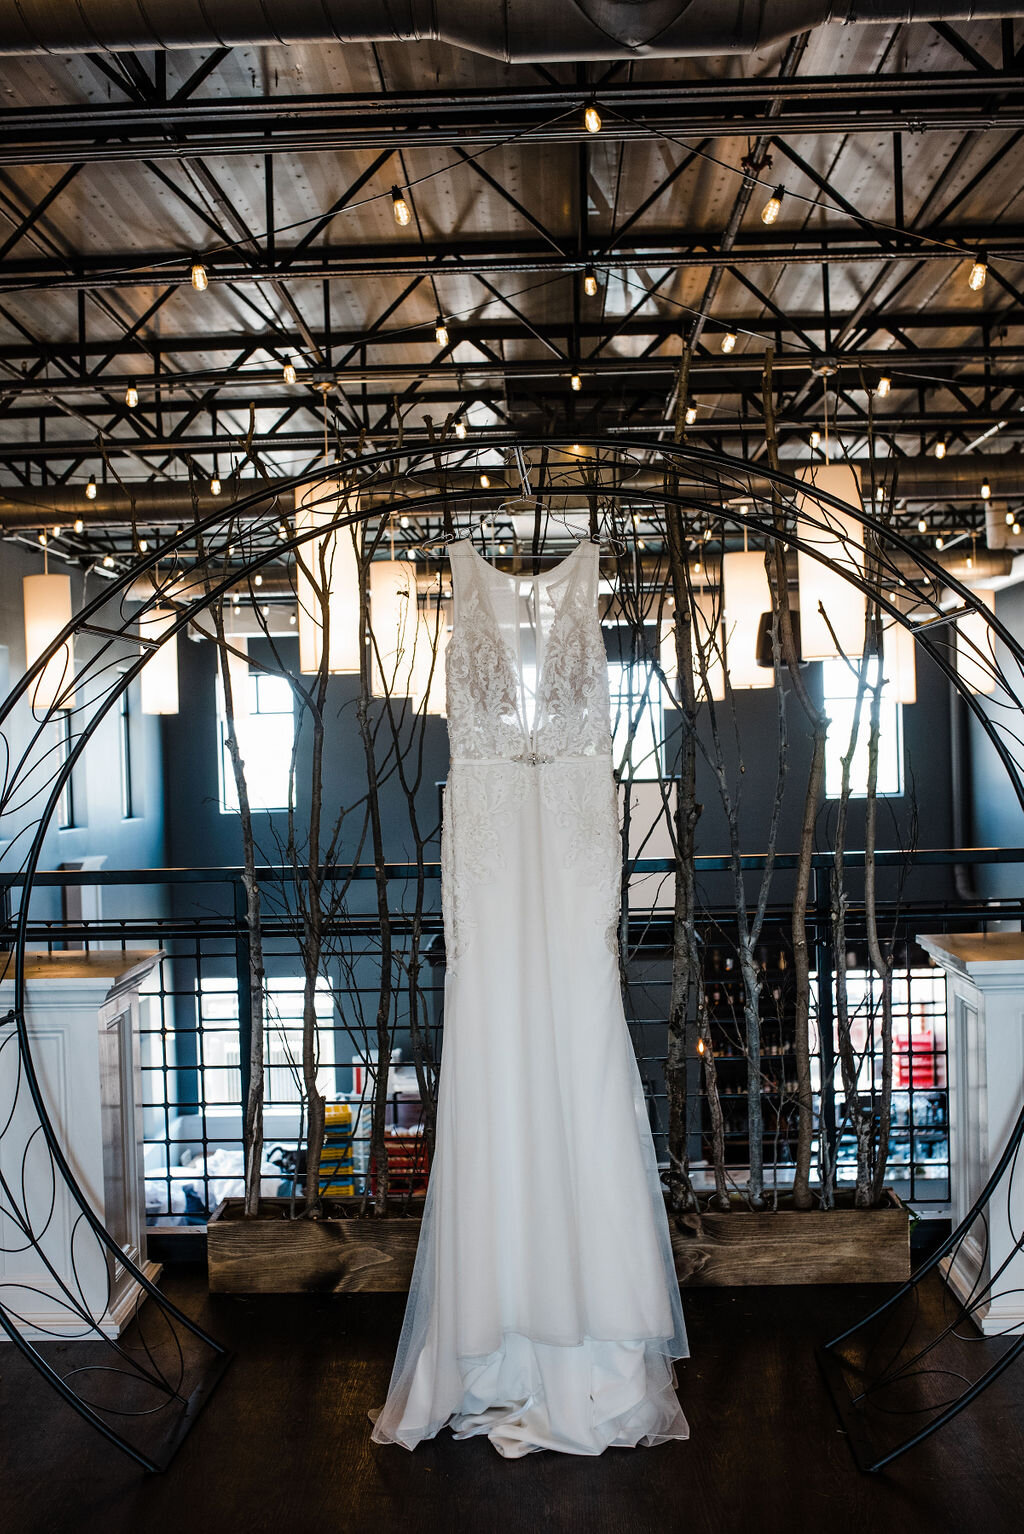 white wedding gown with long train and lace top has a sparkling belt. Wedding dress hangs from a Moon Gate arch on the upper level or a chic wedding venue in Ankeny Iowa. Slate grey walls make a striking backdrop to stark white wood trim and white wooden pedestals flank each side of the wedding arch.